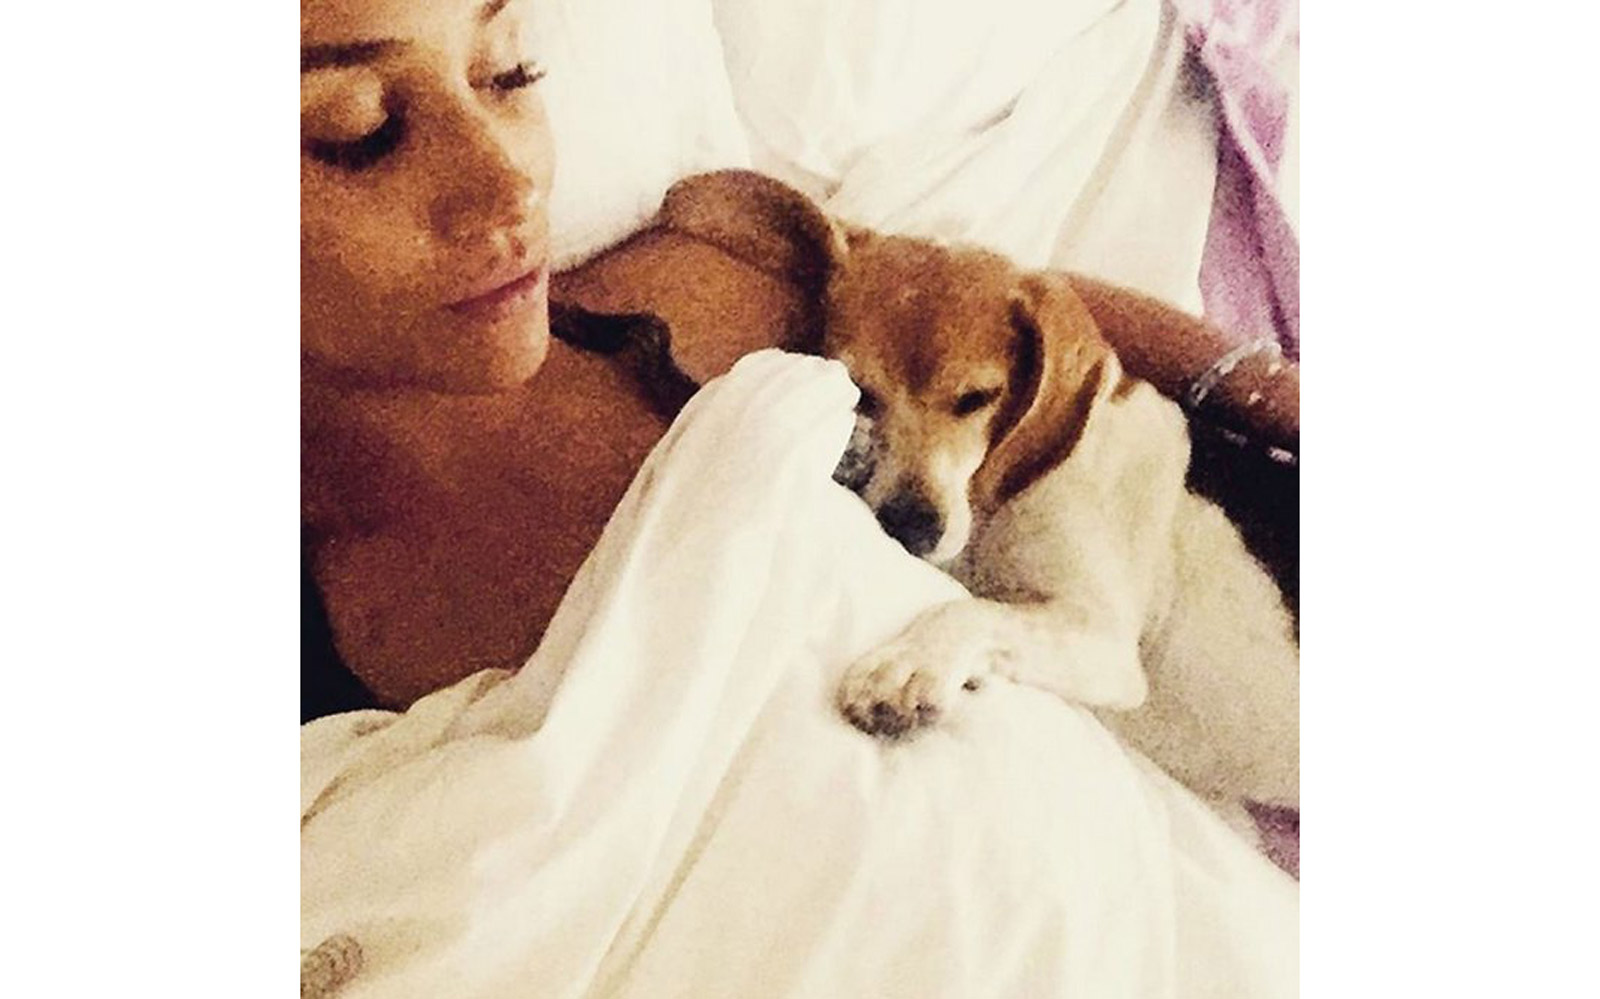 Meghan Markle cuddling with Bogart and Guy